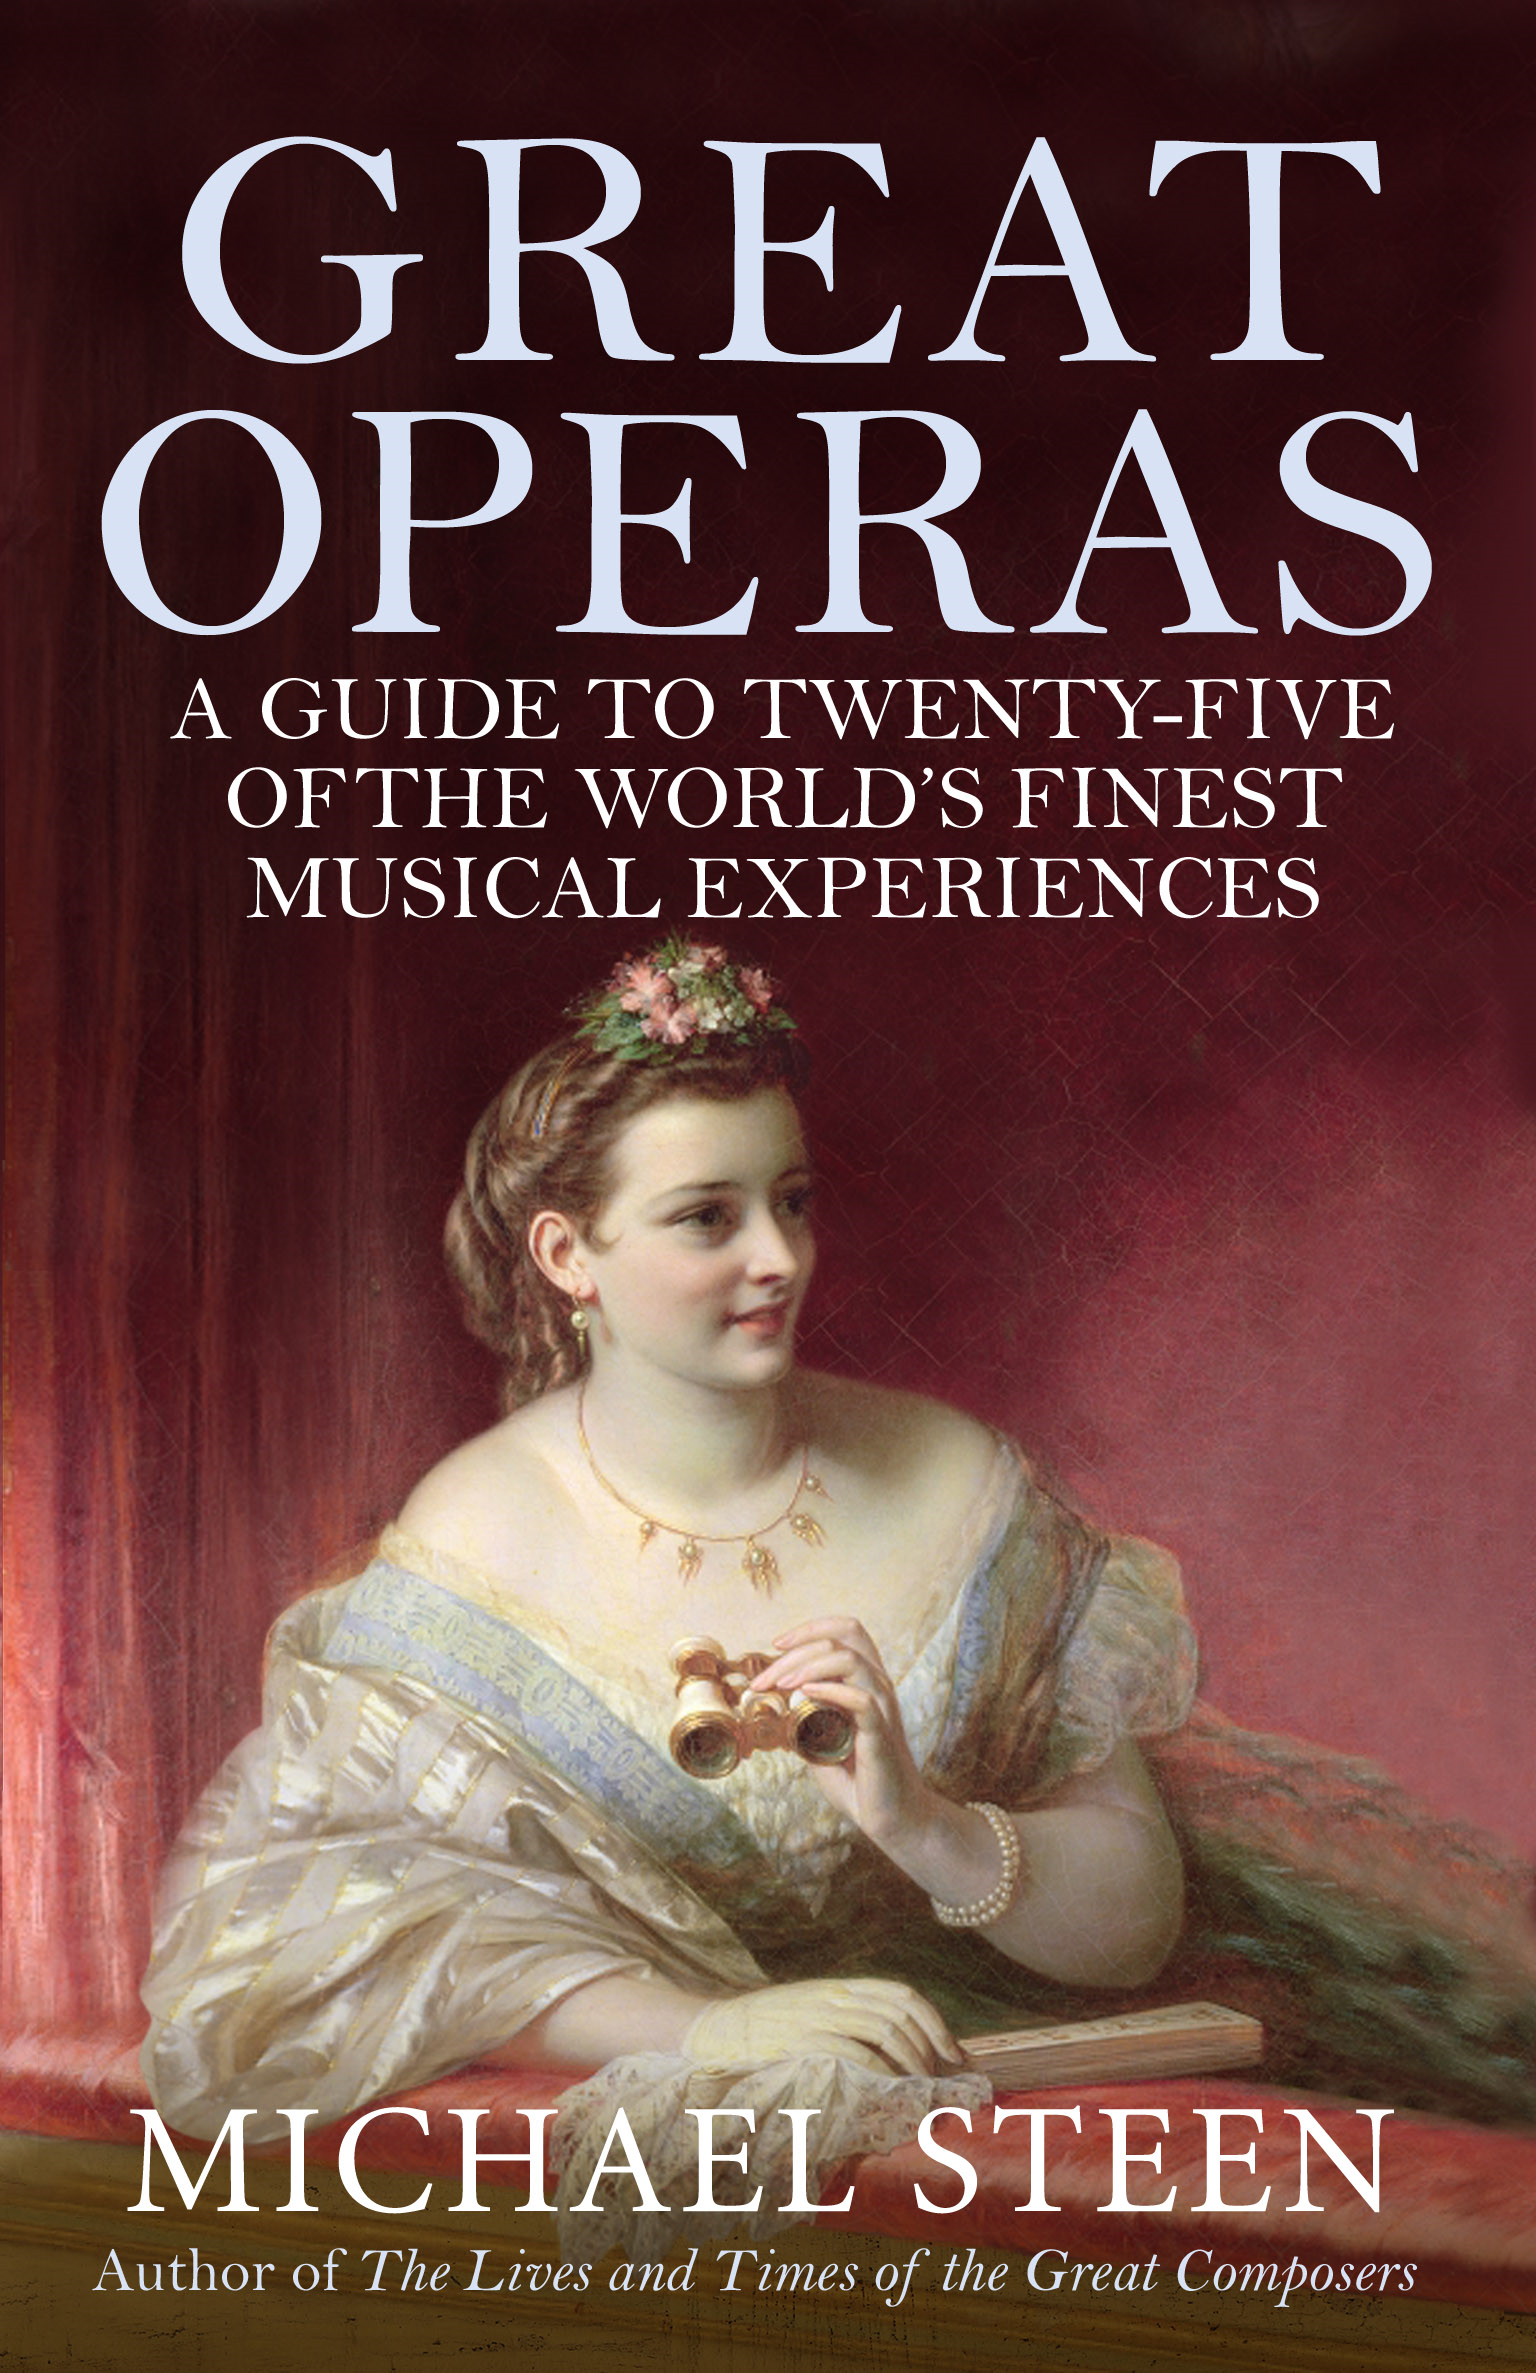 Great Operas By: Michael Steen